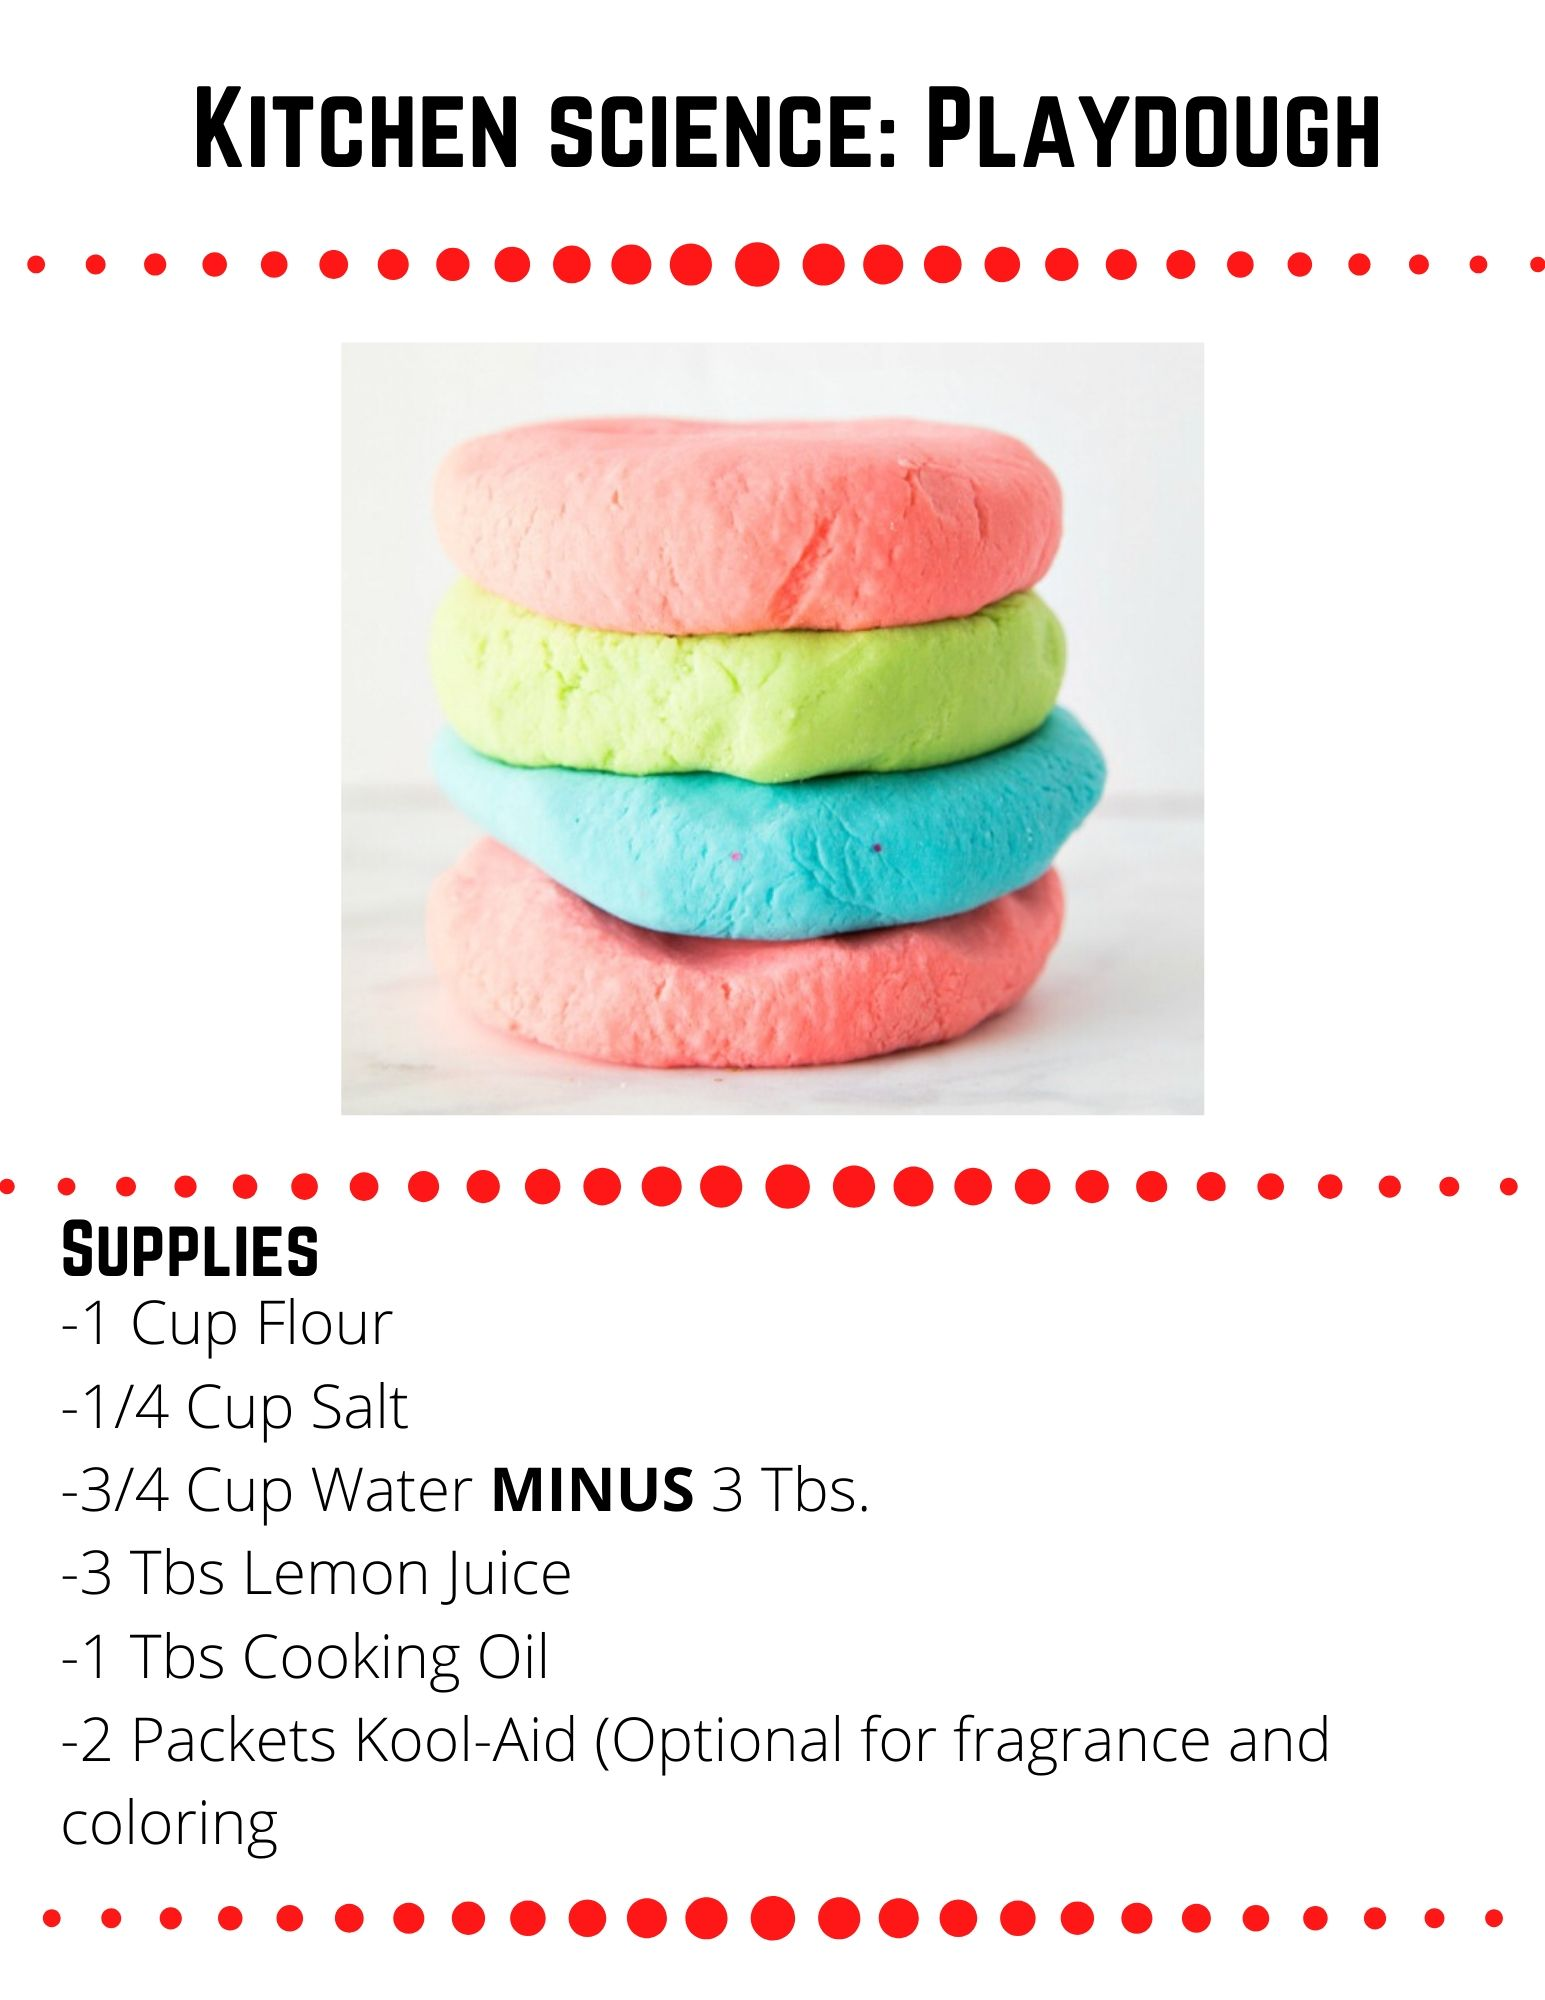 Kitchen science: Playdough: Supplies: -1 Cup Flour -1/4 Cup Salt -3/4 Cup Water MINUS 3 Tbs. -3 Tbs Lemon Juice -1 Tbs Cooking Oil -2 Packets Kool-Aid (Optional for fragrance and coloring. Measure the water and lemon juice into a heatproof, microwavable 2-cup measuring cup. Heat in the microwave until just boiling, about three minutes. Mix together the flour and salt. If using Kool Aid, slowly (the mixture will foam a bit) pour the kool-aid packets into the HOT water and lemon juice mixture and add additional food coloring to intensify the color if desired. Slowly pour the liquid into the flour and salt mixture, and stir with a wooden paddle until it just barely begins to form a dough. Drizzle the tablespoon of cooking oil over the dough and stir again until it forms a ball. At this point, you may want to knead the dough with your hands. It may feel a bit sticky, but DO NOT add more flour. As the dough cools it will thicken and become less sticky.  Once the dough is completely cooled, you may add flour a tablespoon at a time until it is the perfect consistency. This recipe makes a small batch. Each batch makes just a bit over one cup of play dough. If you want to do rainbow colors like the above photo,  you will have to make several batches with different colors of Kool-Aid/food coloring.